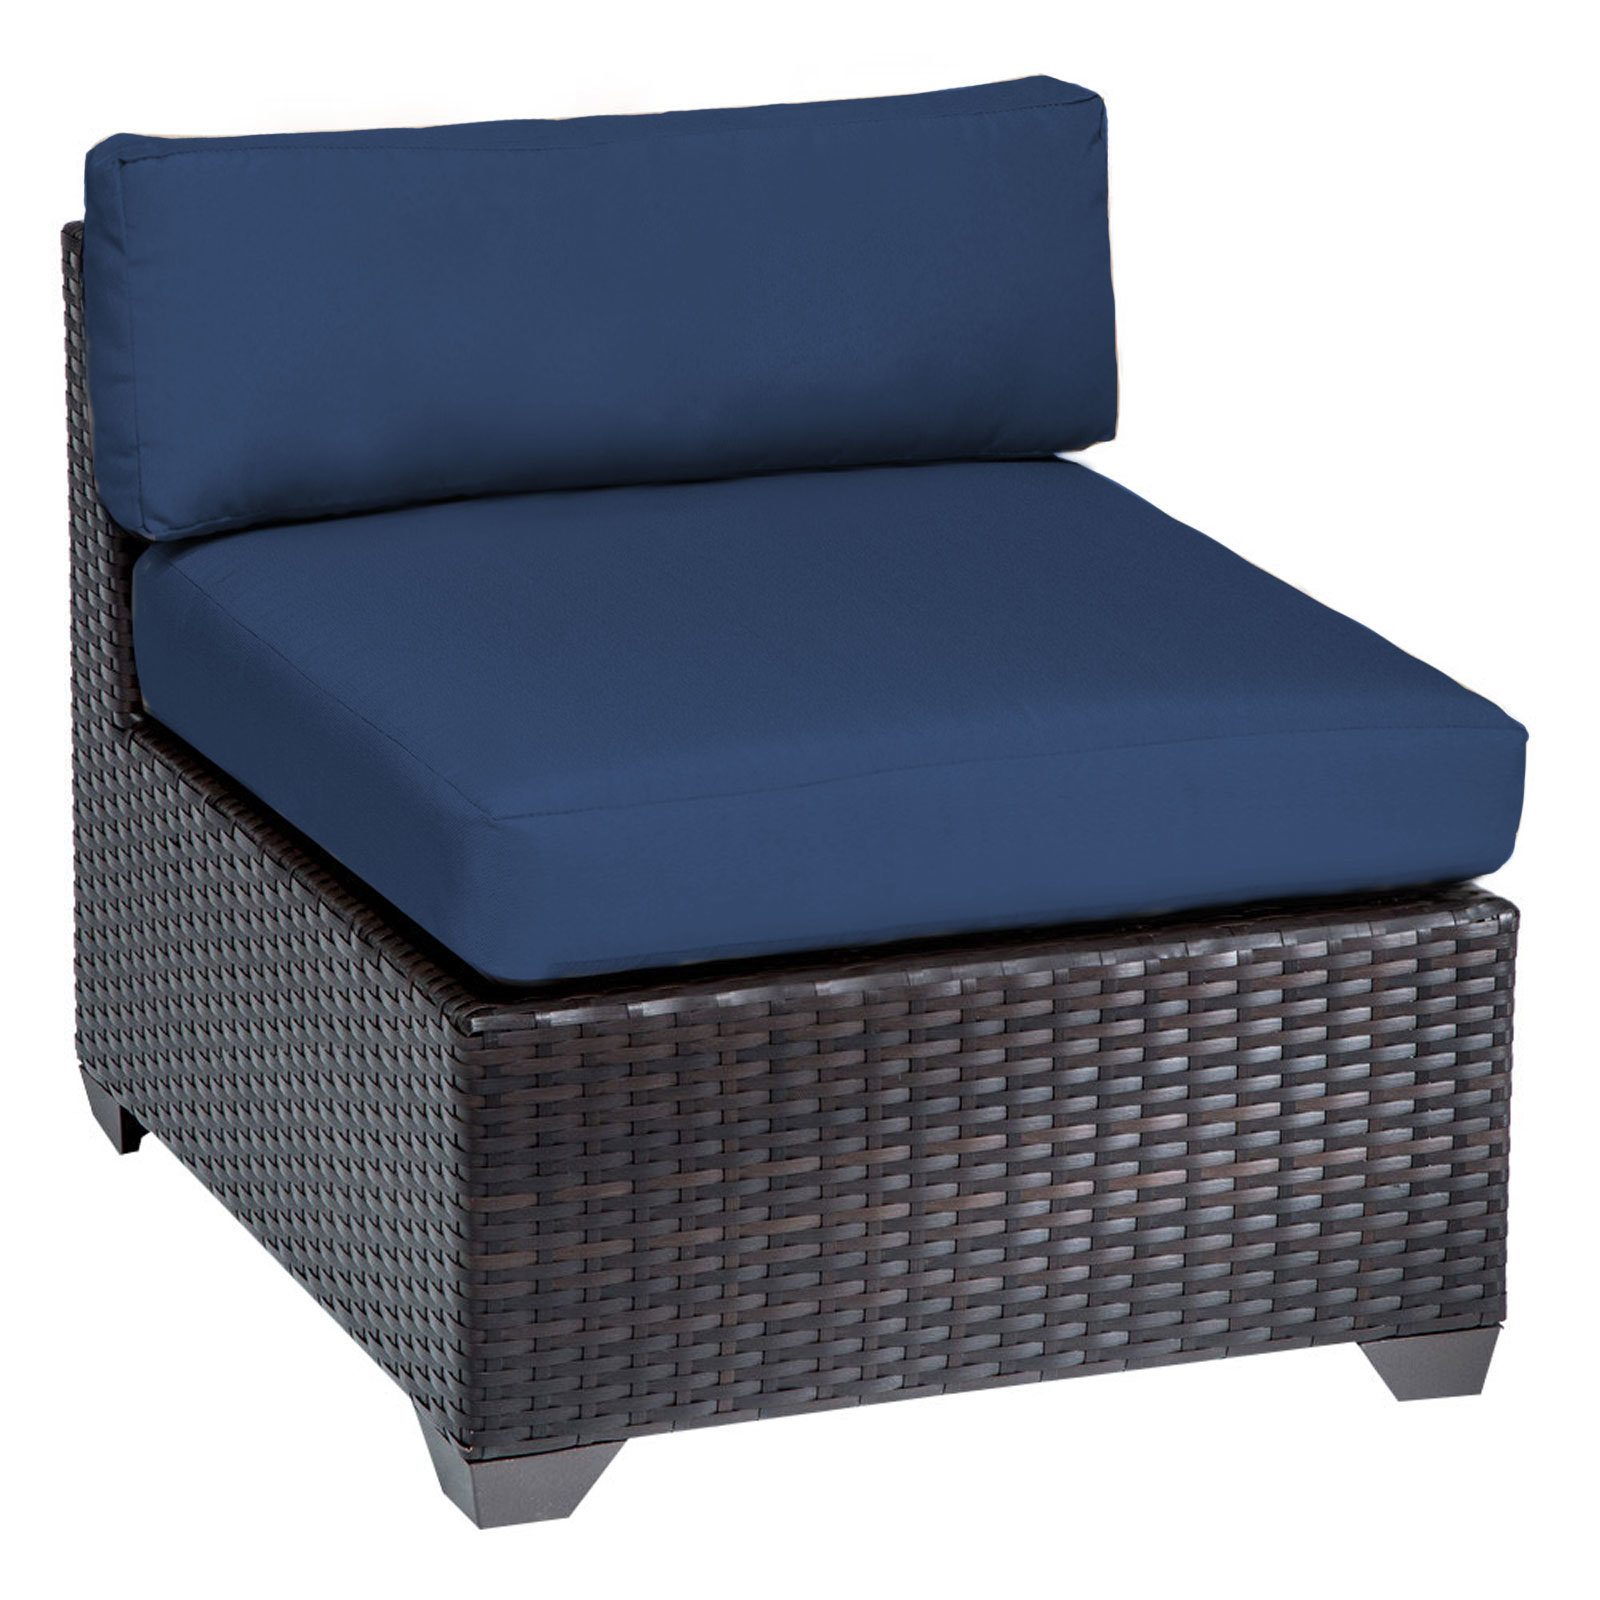 Favorite Camak Patio Sofas With Cushions For Camak Patio Chair With Cushions (View 10 of 20)